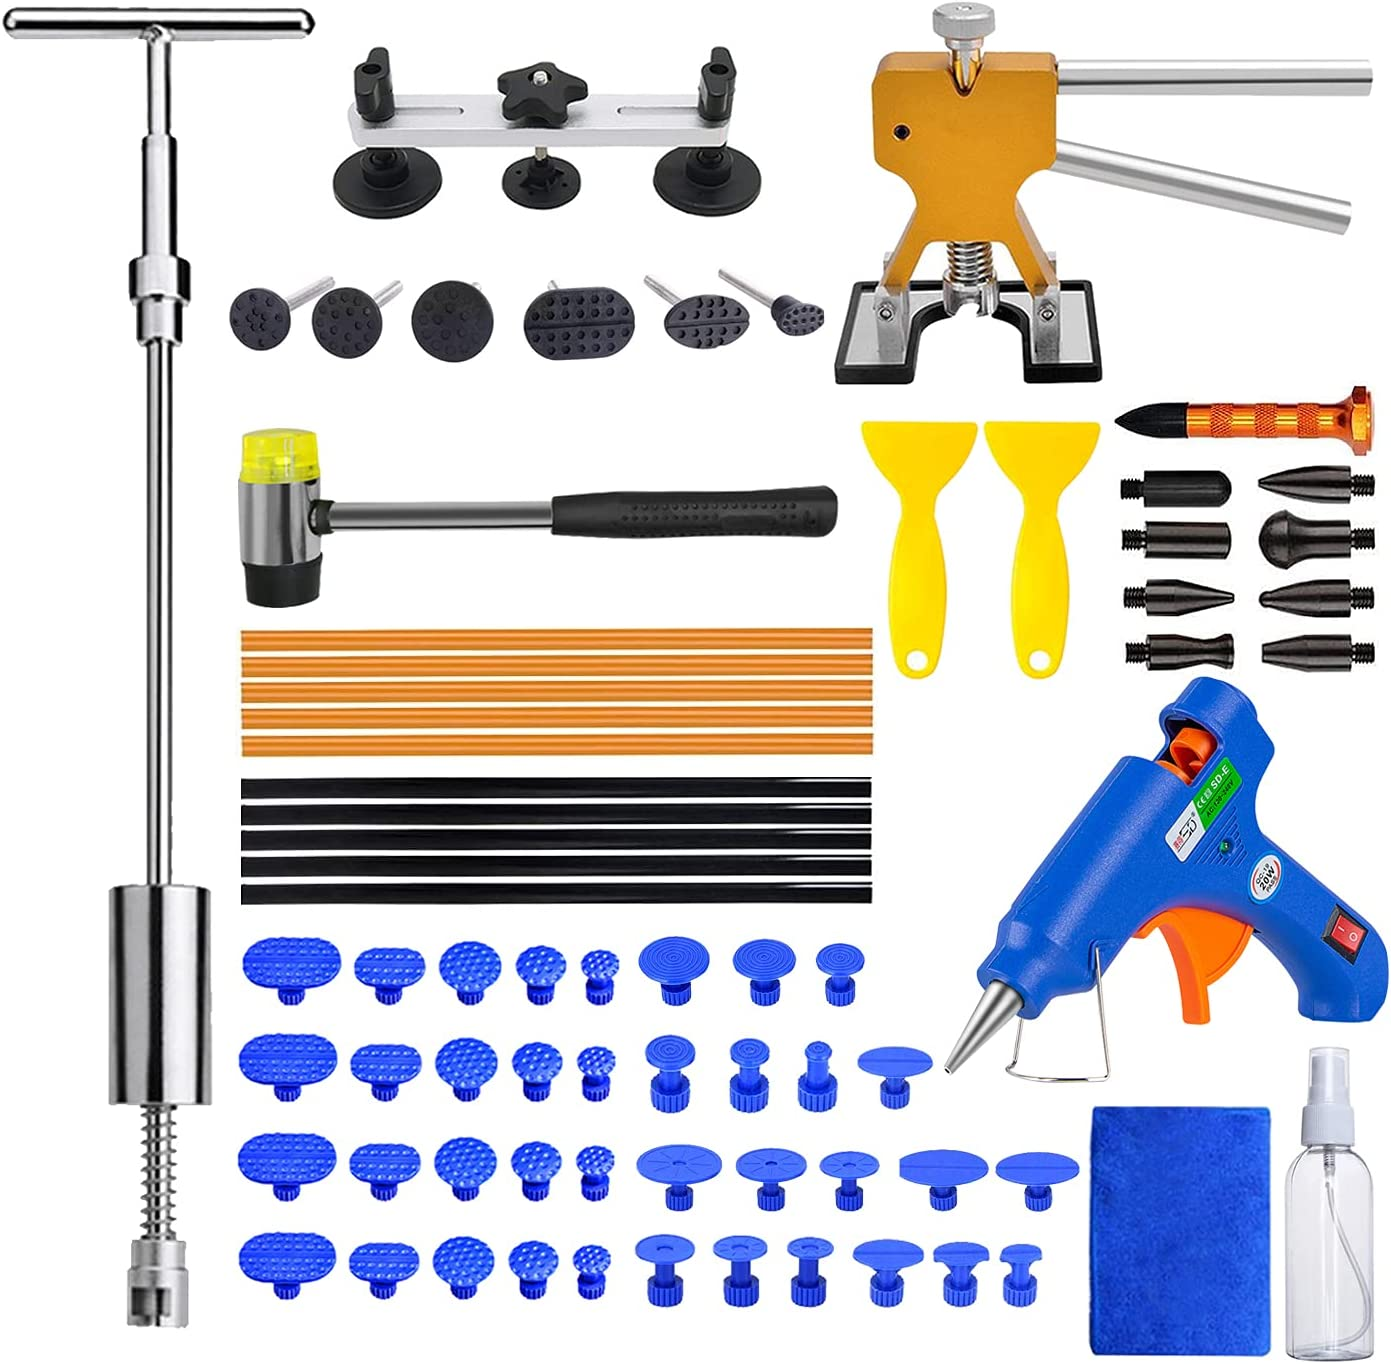 MENQANG Max 62% OFF Dent Repair kit dent Removal Tool Direct sale of manufacturer R Used to